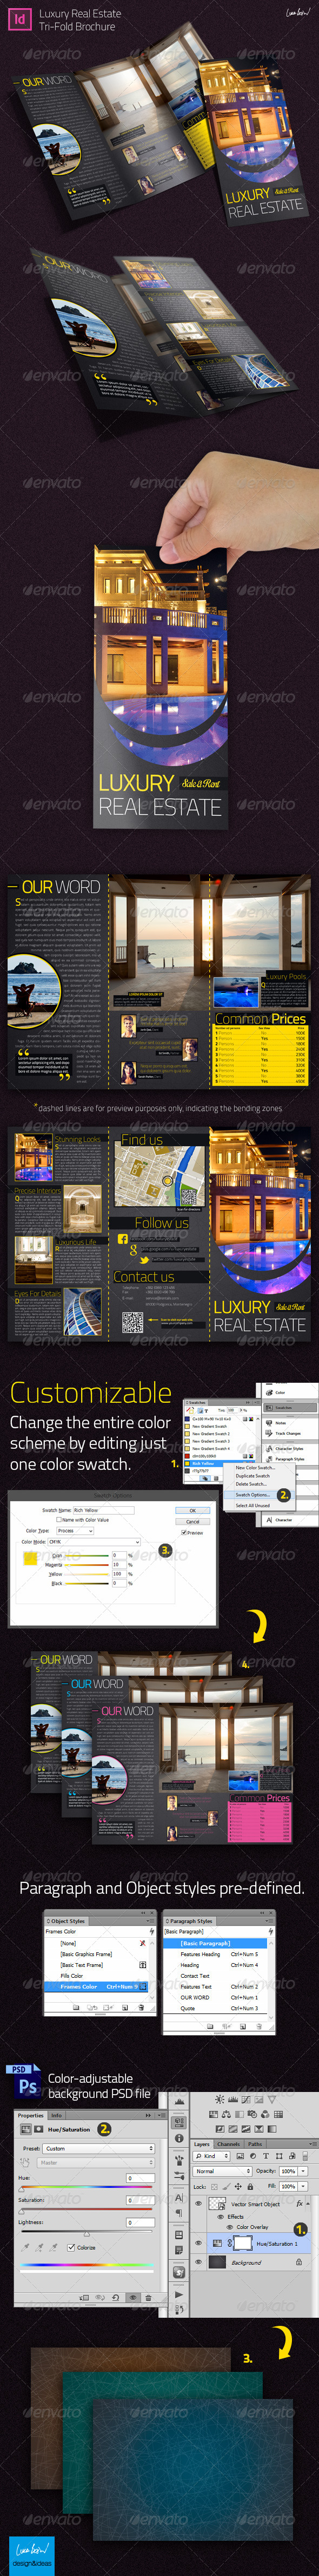 Luxury Real Estate - Indesign Trifold Brochure - Brochures Print Templates